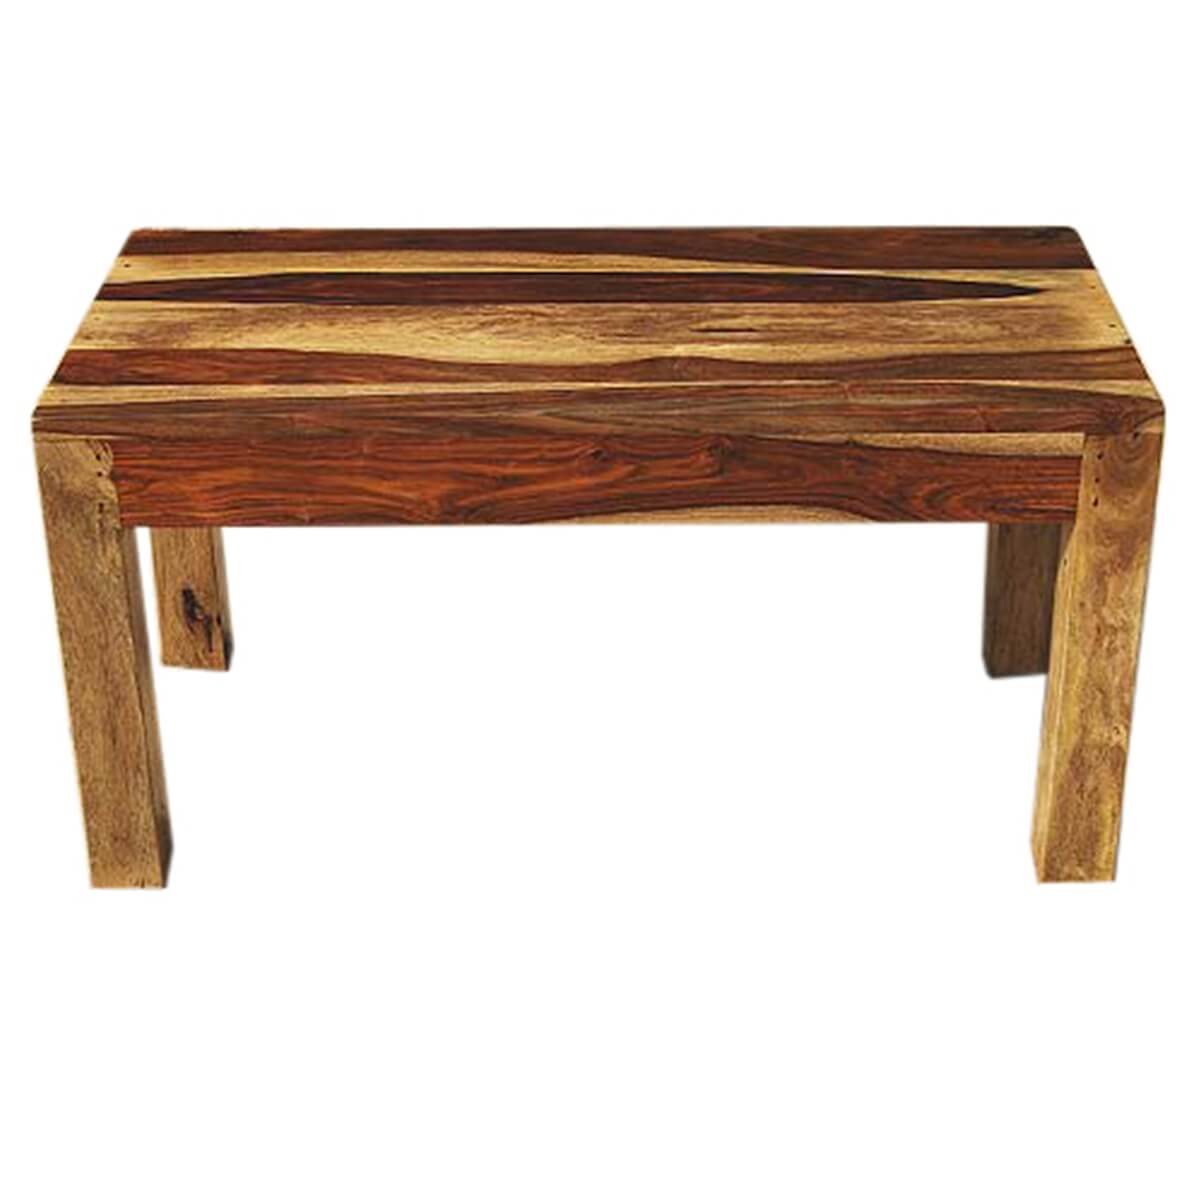 wausau simplistic handcrafted 100 solid wood coffee table. Black Bedroom Furniture Sets. Home Design Ideas